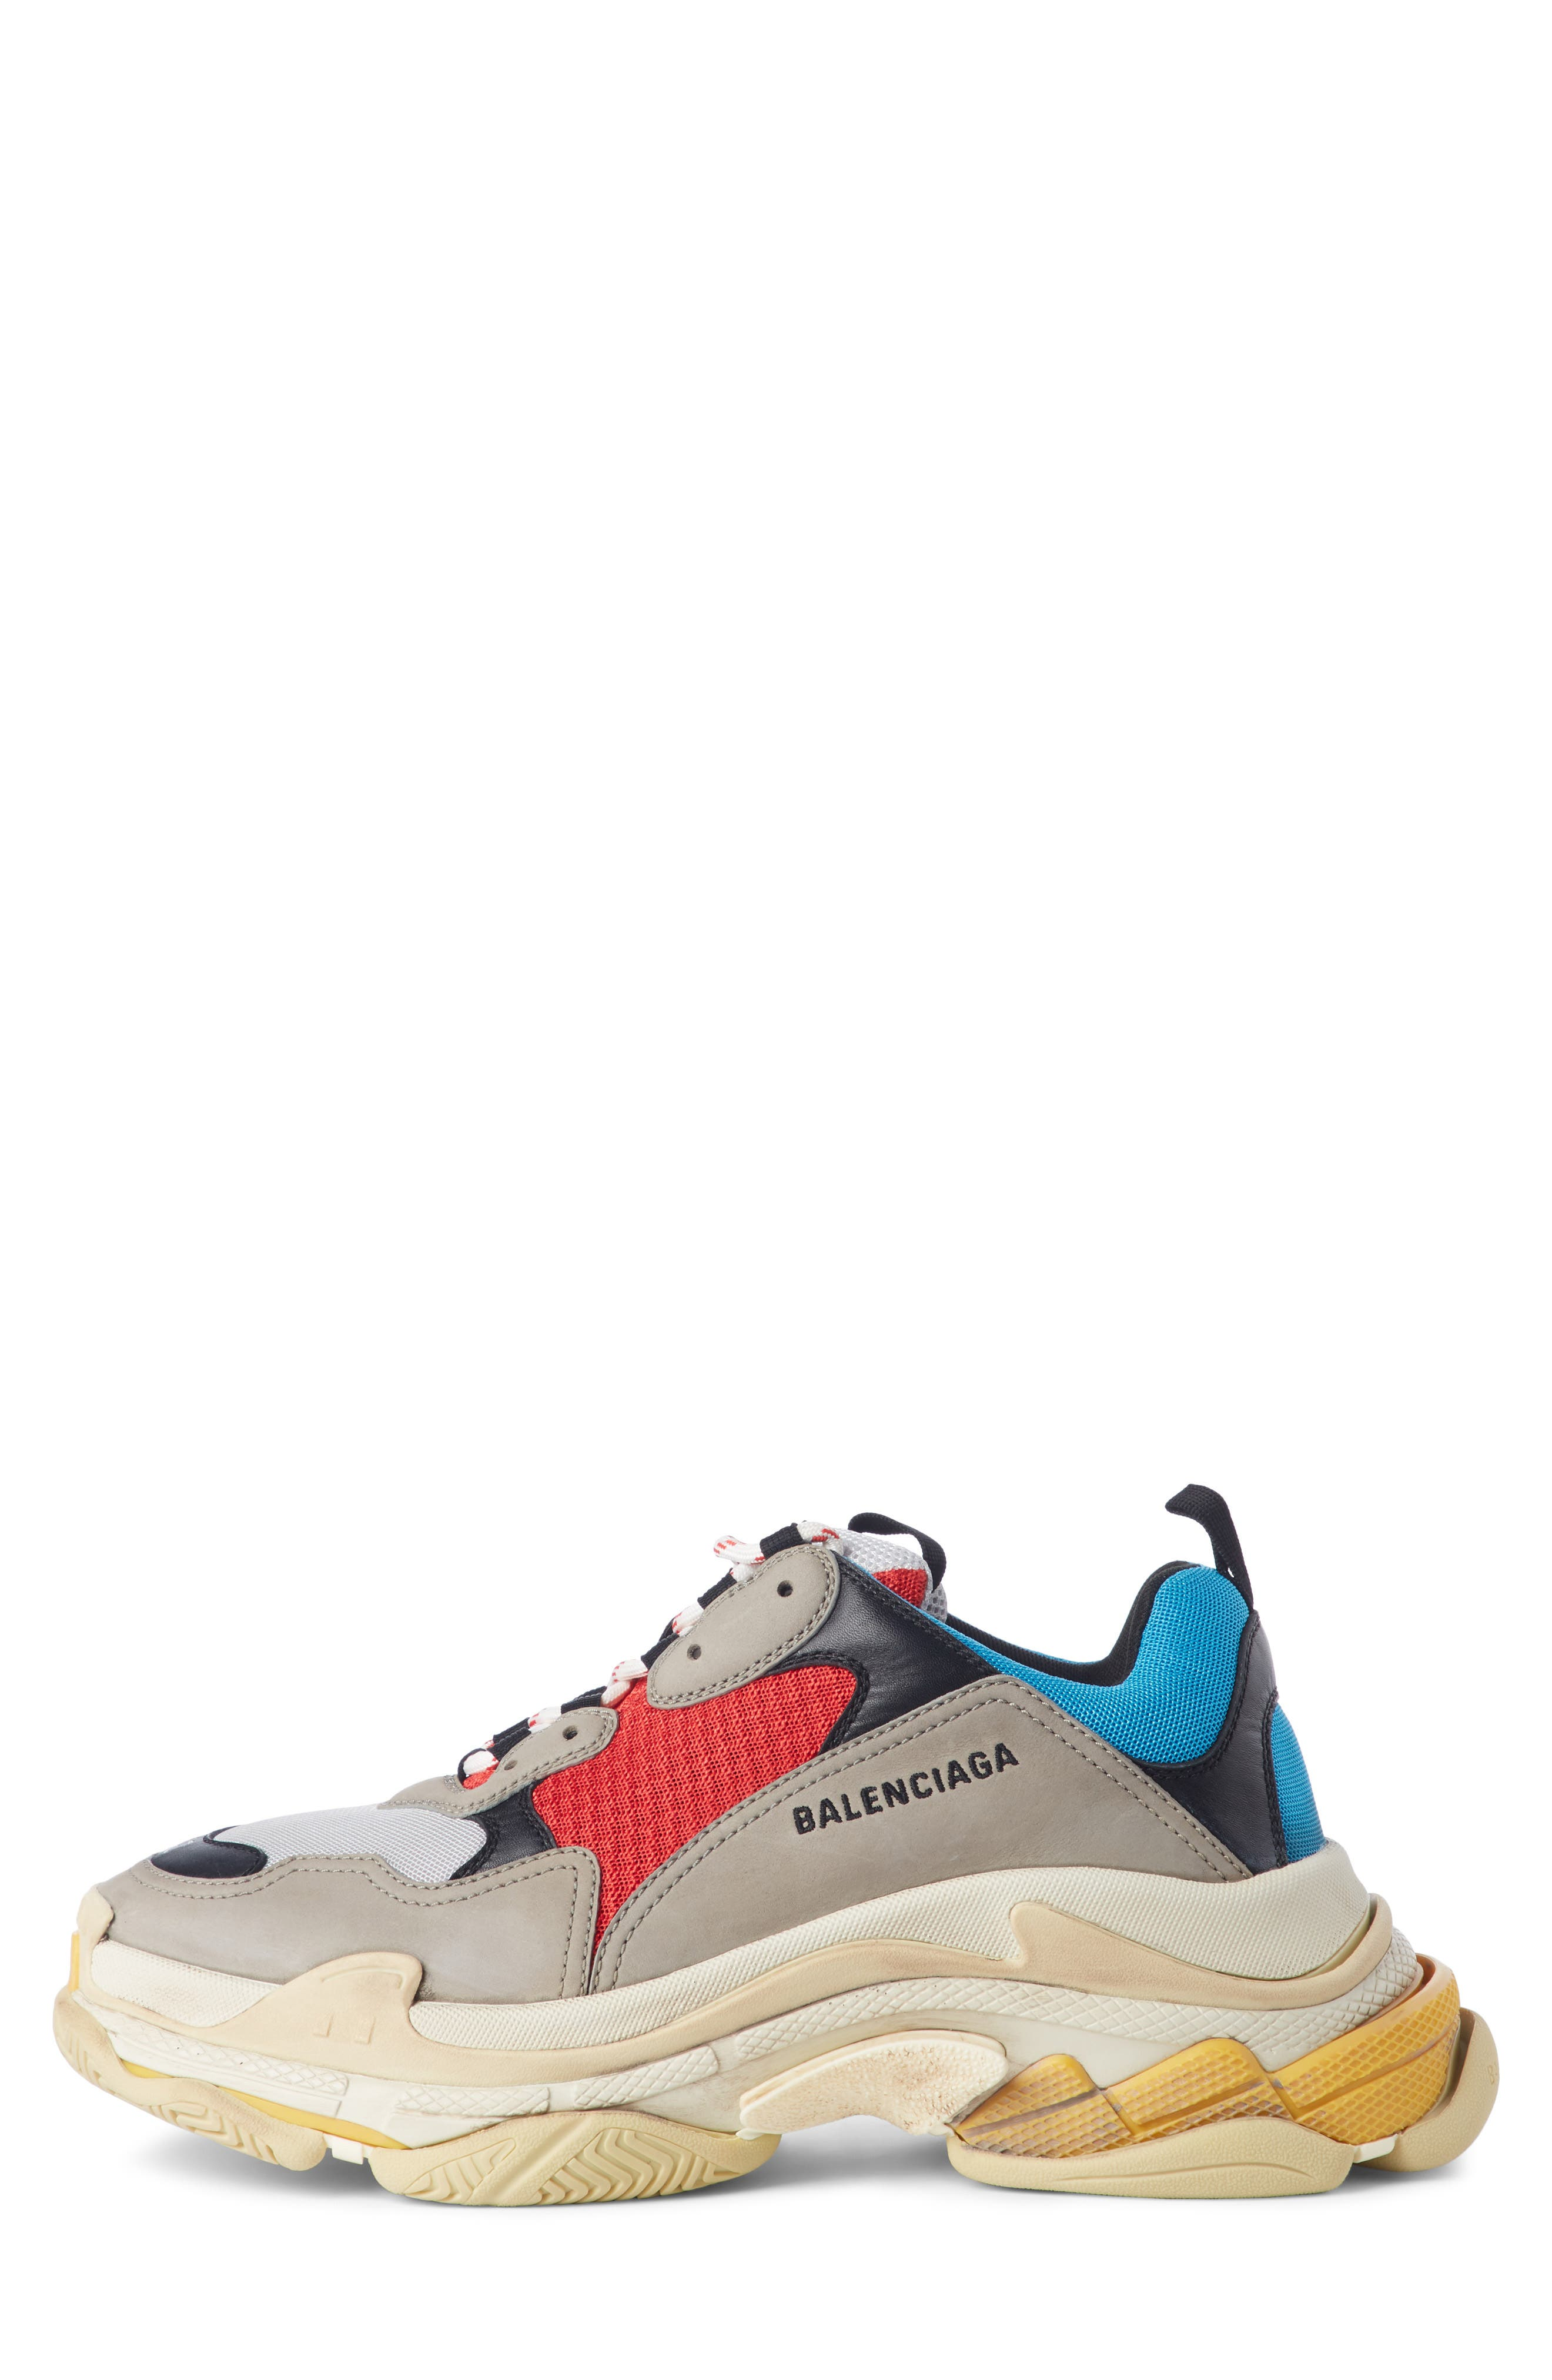 Triple S Retro Sneaker,                             Alternate thumbnail 3, color,                             Beige